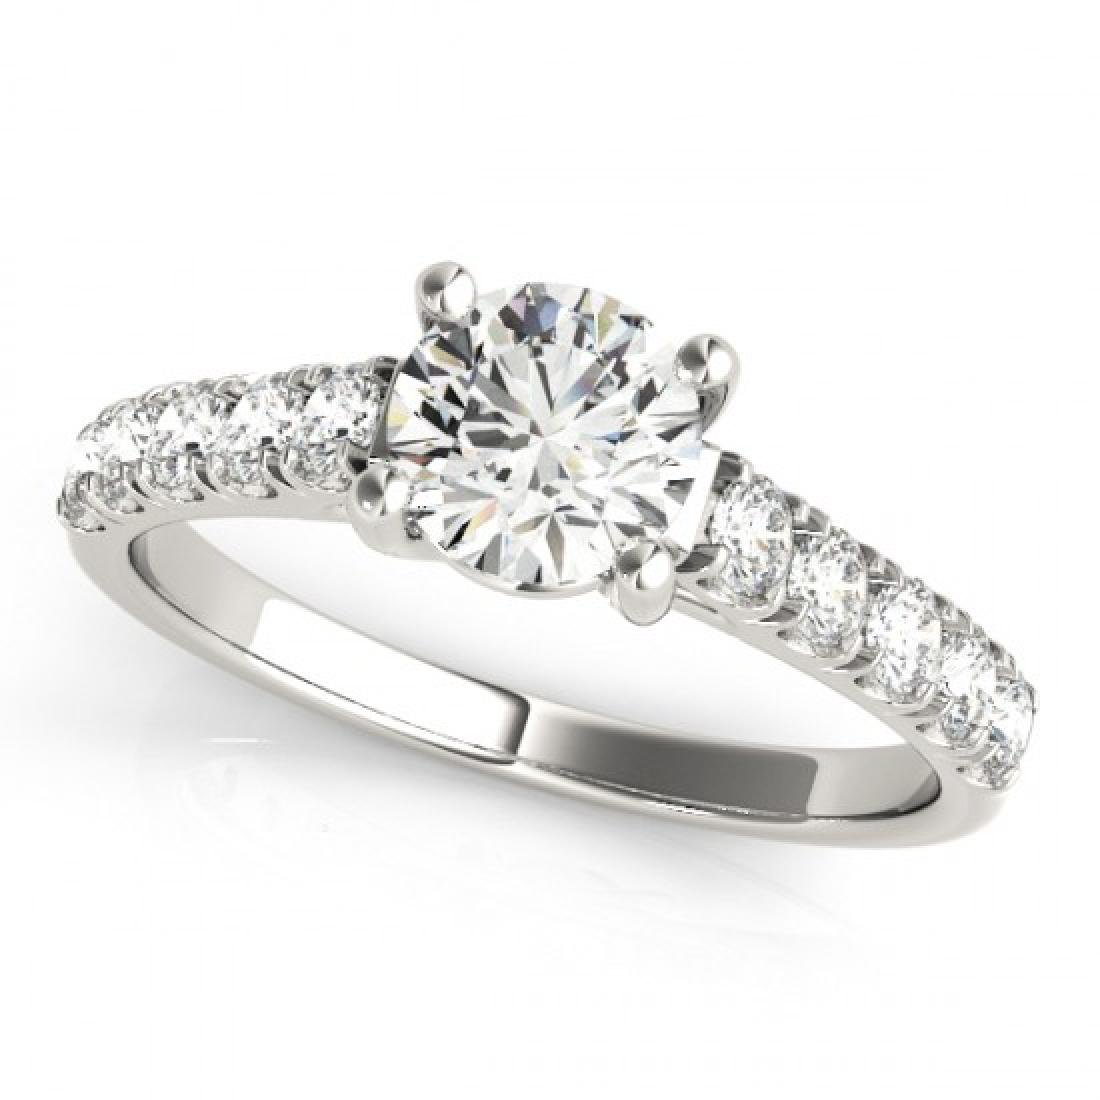 1.55 CTW Certified VS/SI Diamond Solitaire Ring 18K